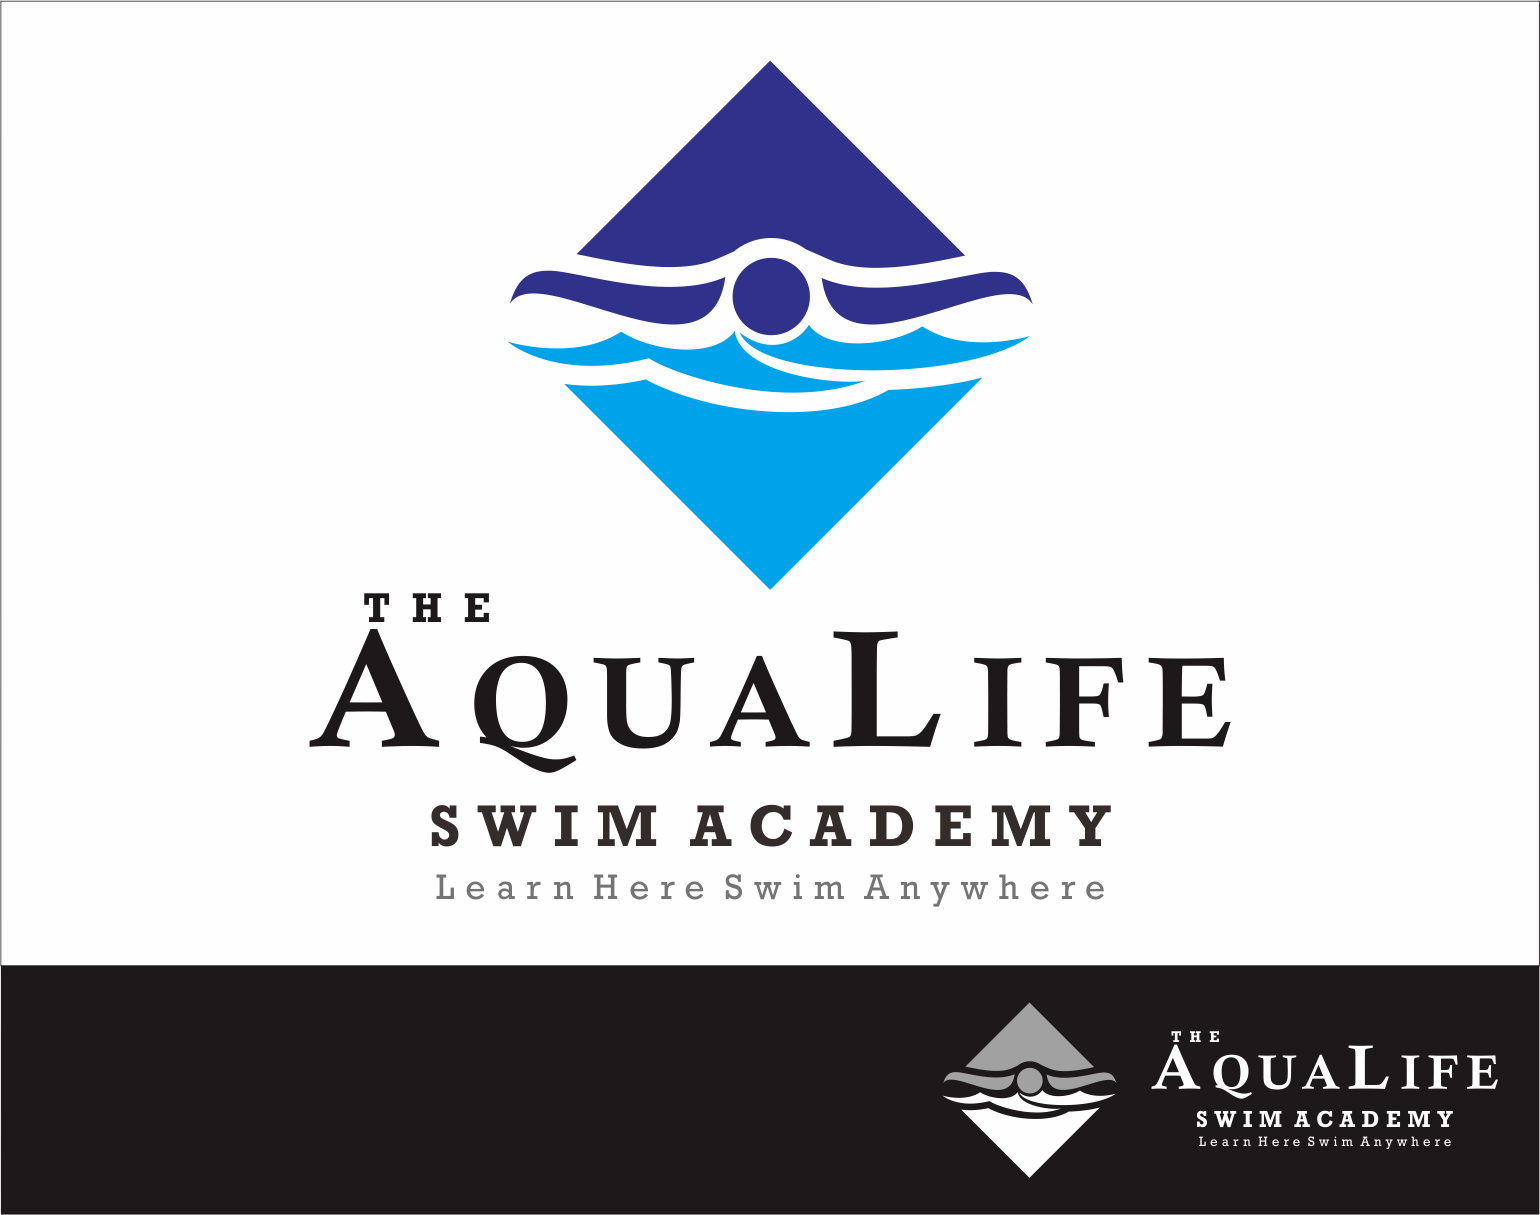 Logo Design by Armada Jamaluddin - Entry No. 222 in the Logo Design Contest Artistic Logo Design Wanted for The Aqua Life Swim Academy.